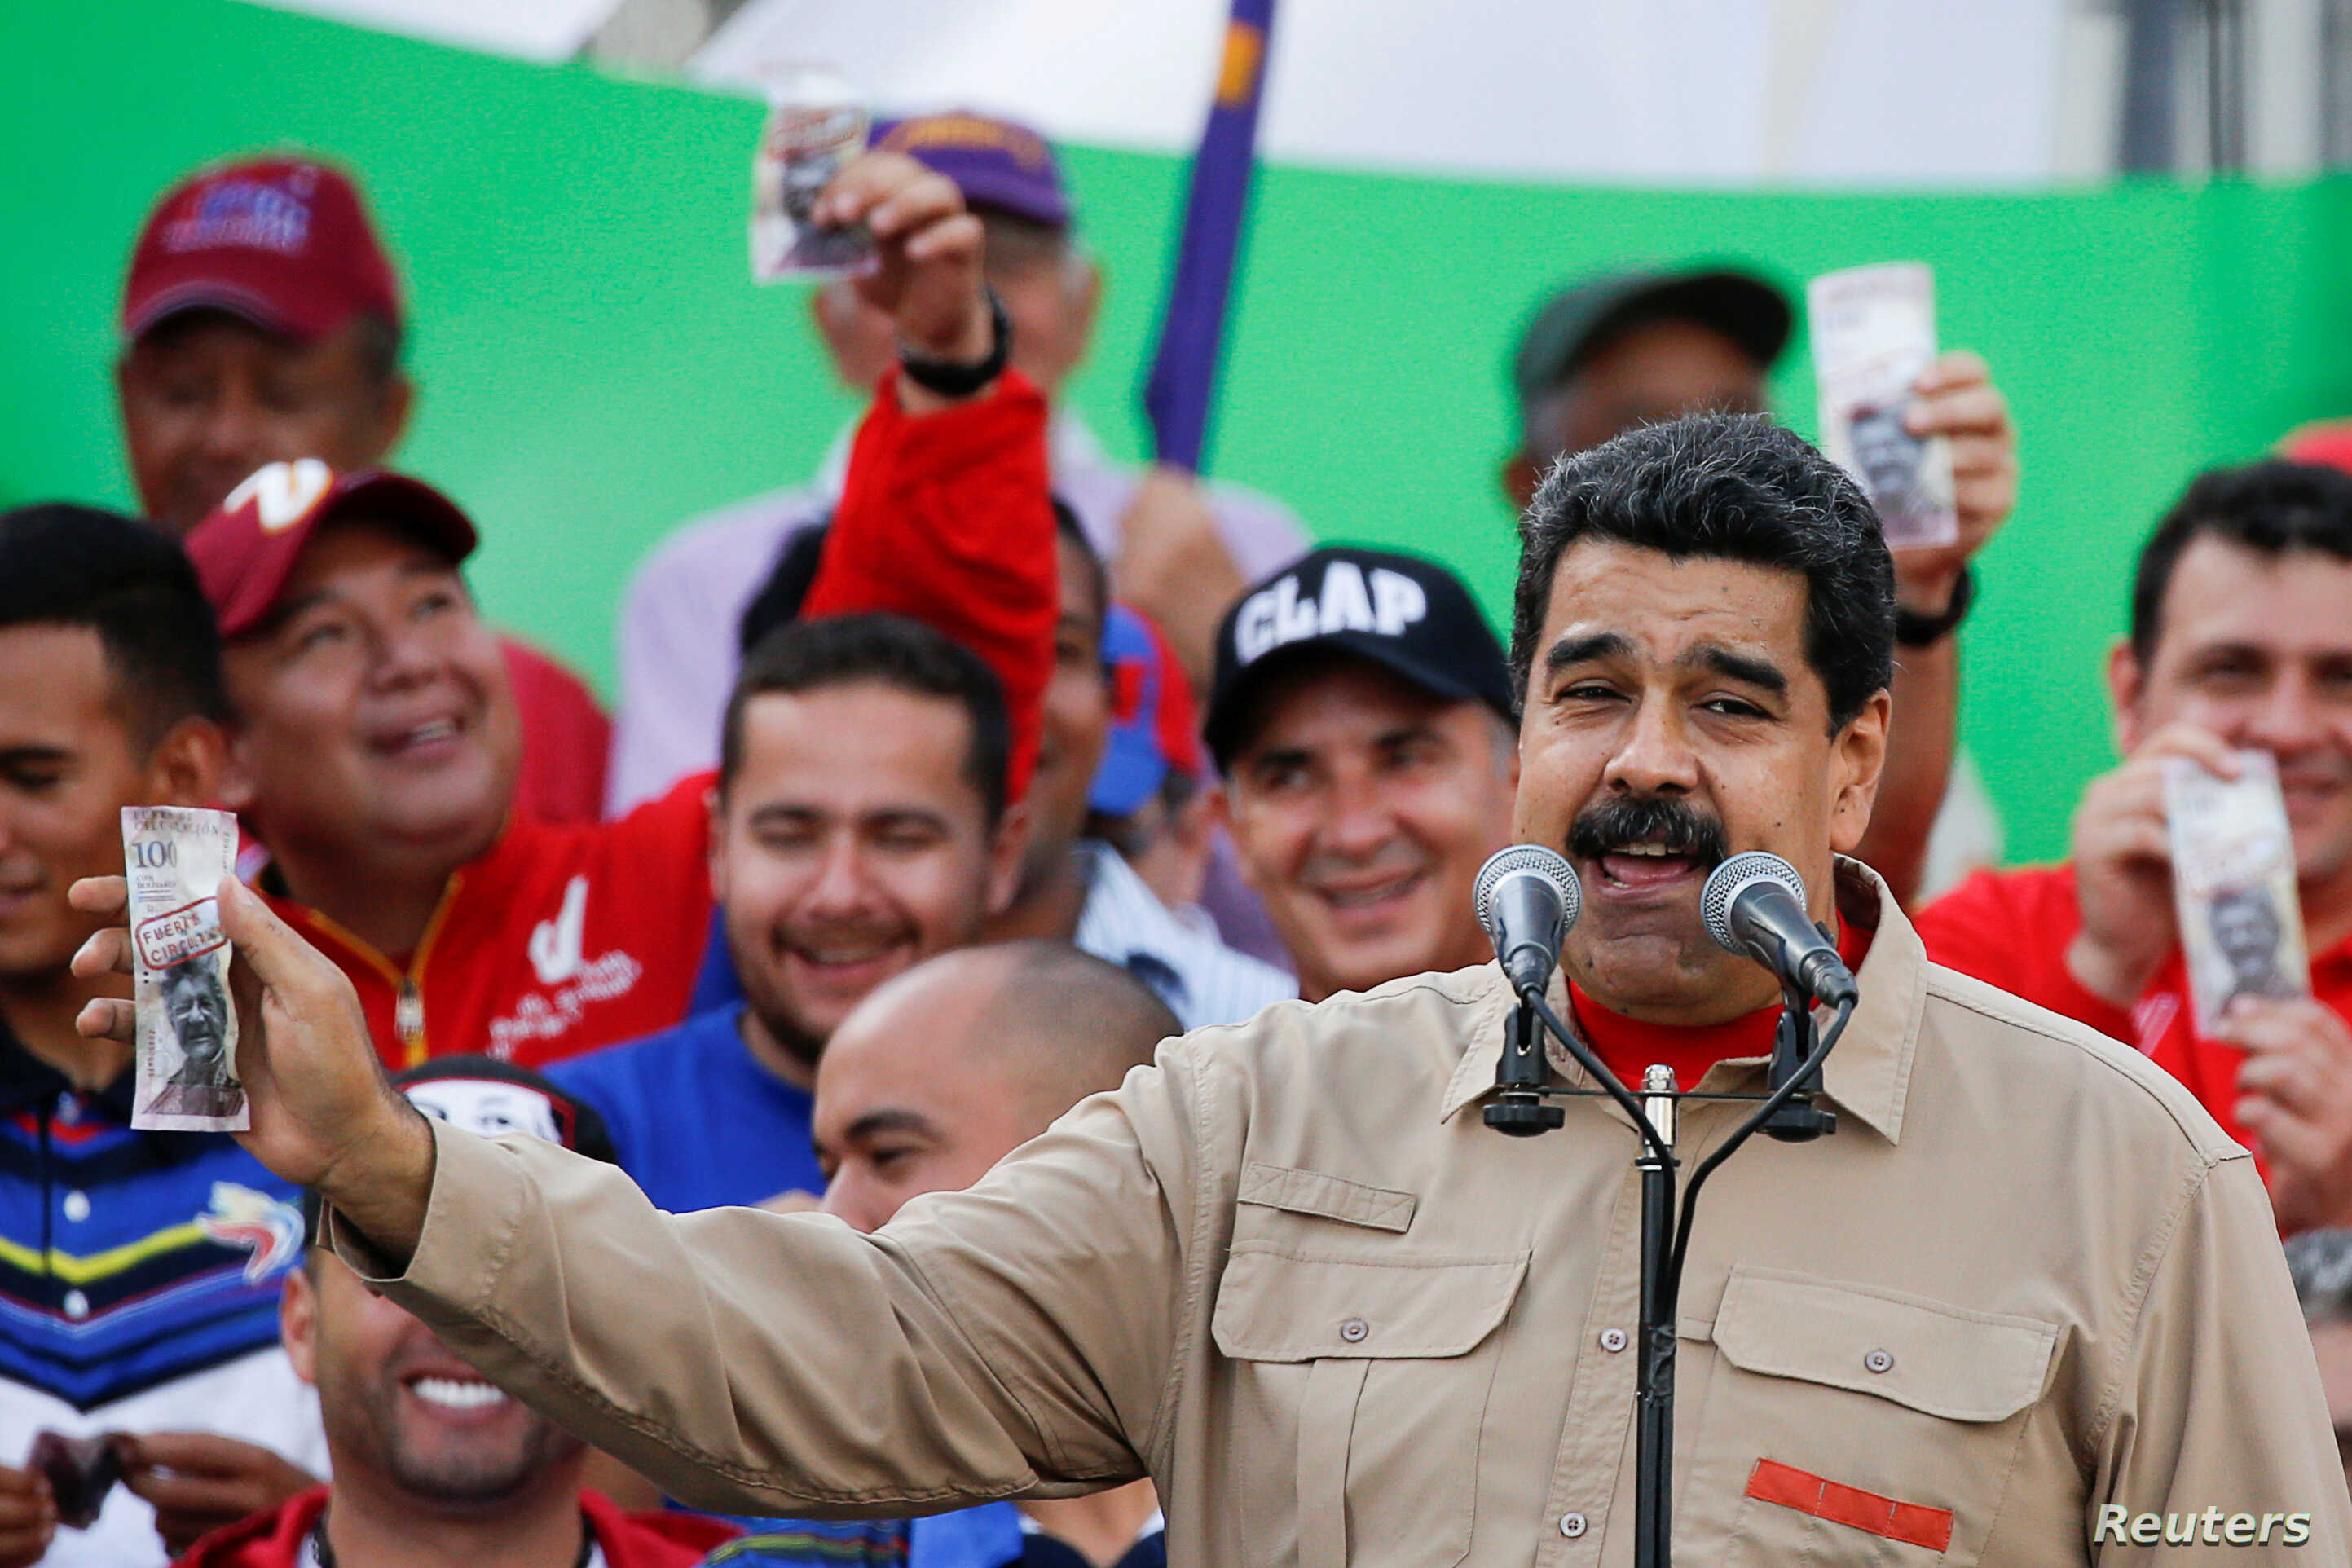 Venezuela's President Nicolas Maduro holds up a mock 100-bolivar bill depicting the president of the National Assembly Henry Ramos Allup, during a pro-government rally in Caracas, Venezuela, Dec. 17, 2016.